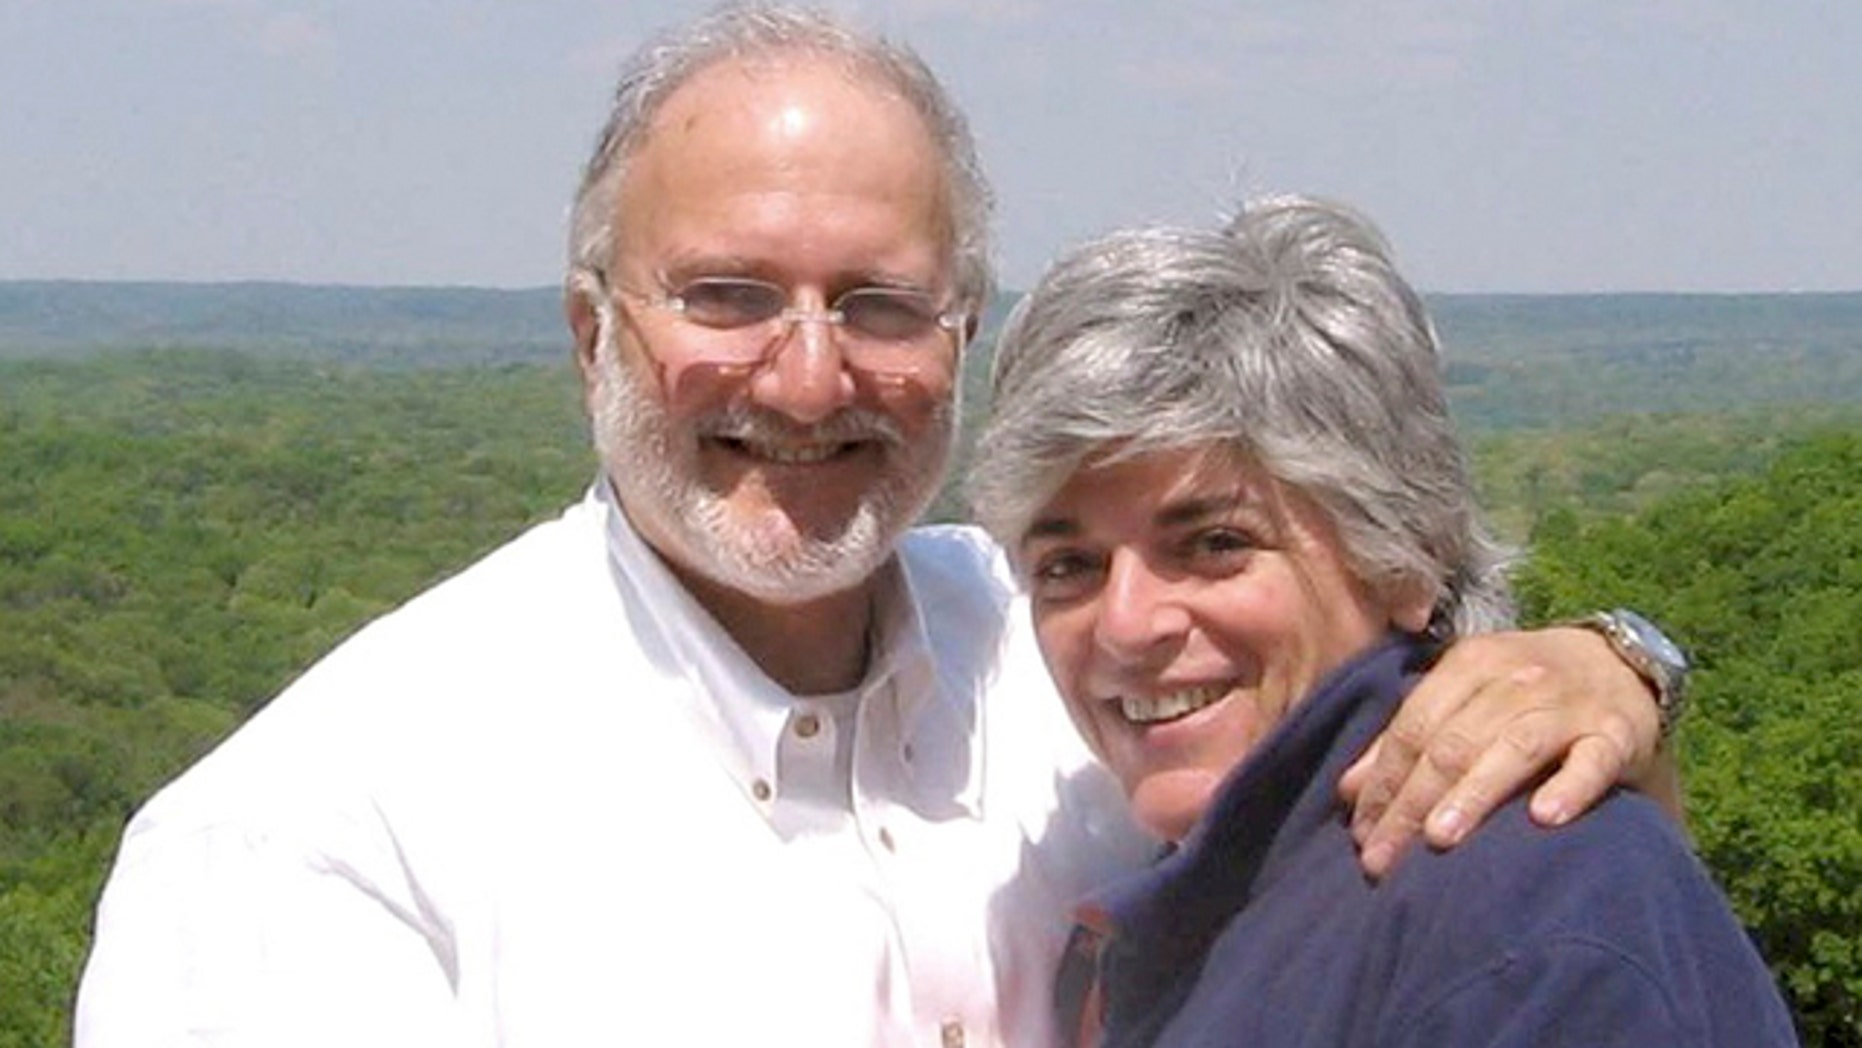 This file handout photo provided by the Gross family shows Alan and Judy Gross.